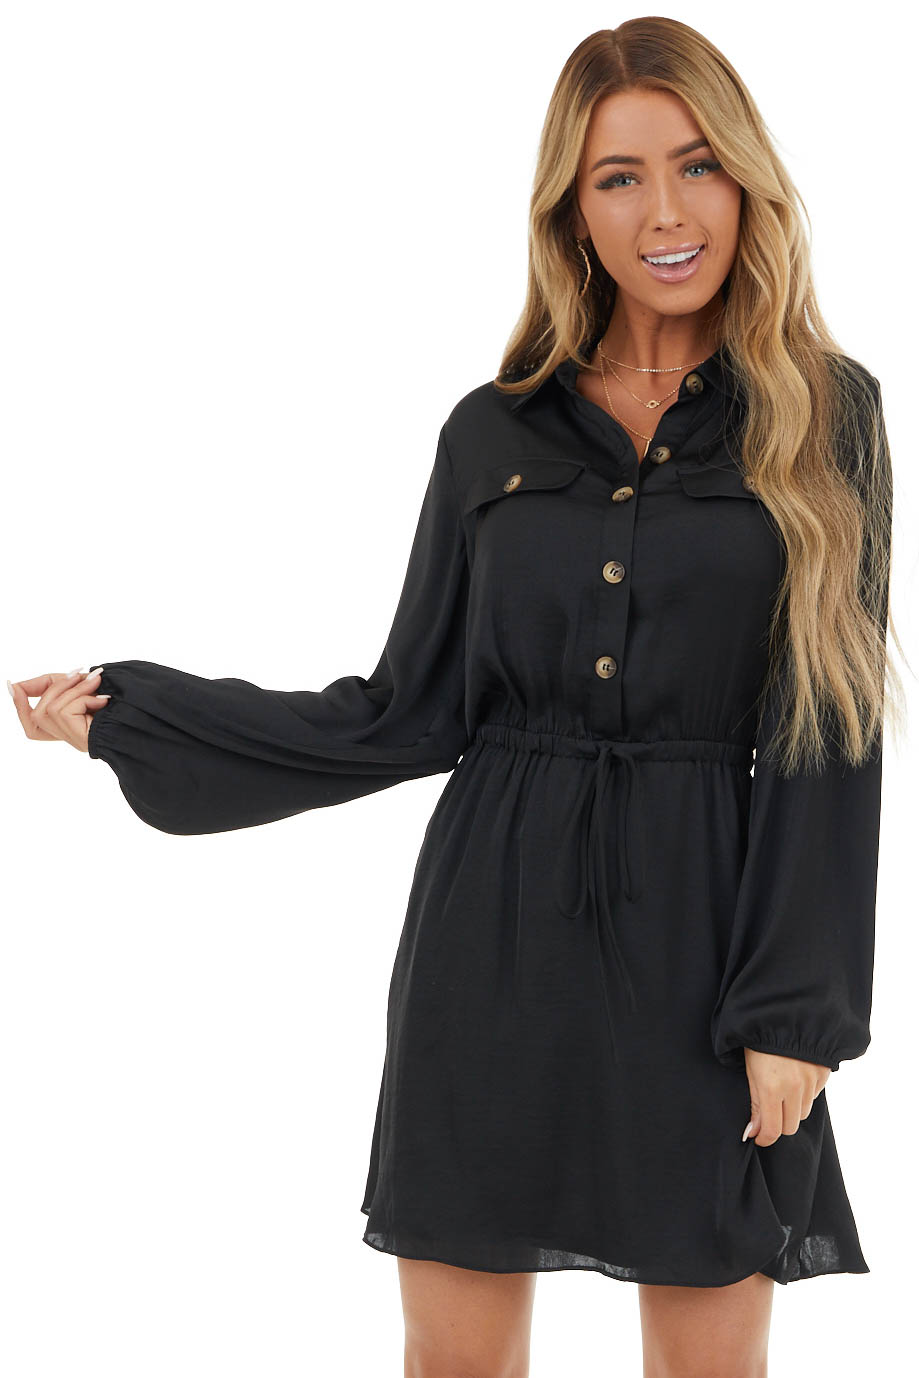 Black Button Up Collared Dress with Flap Pockets